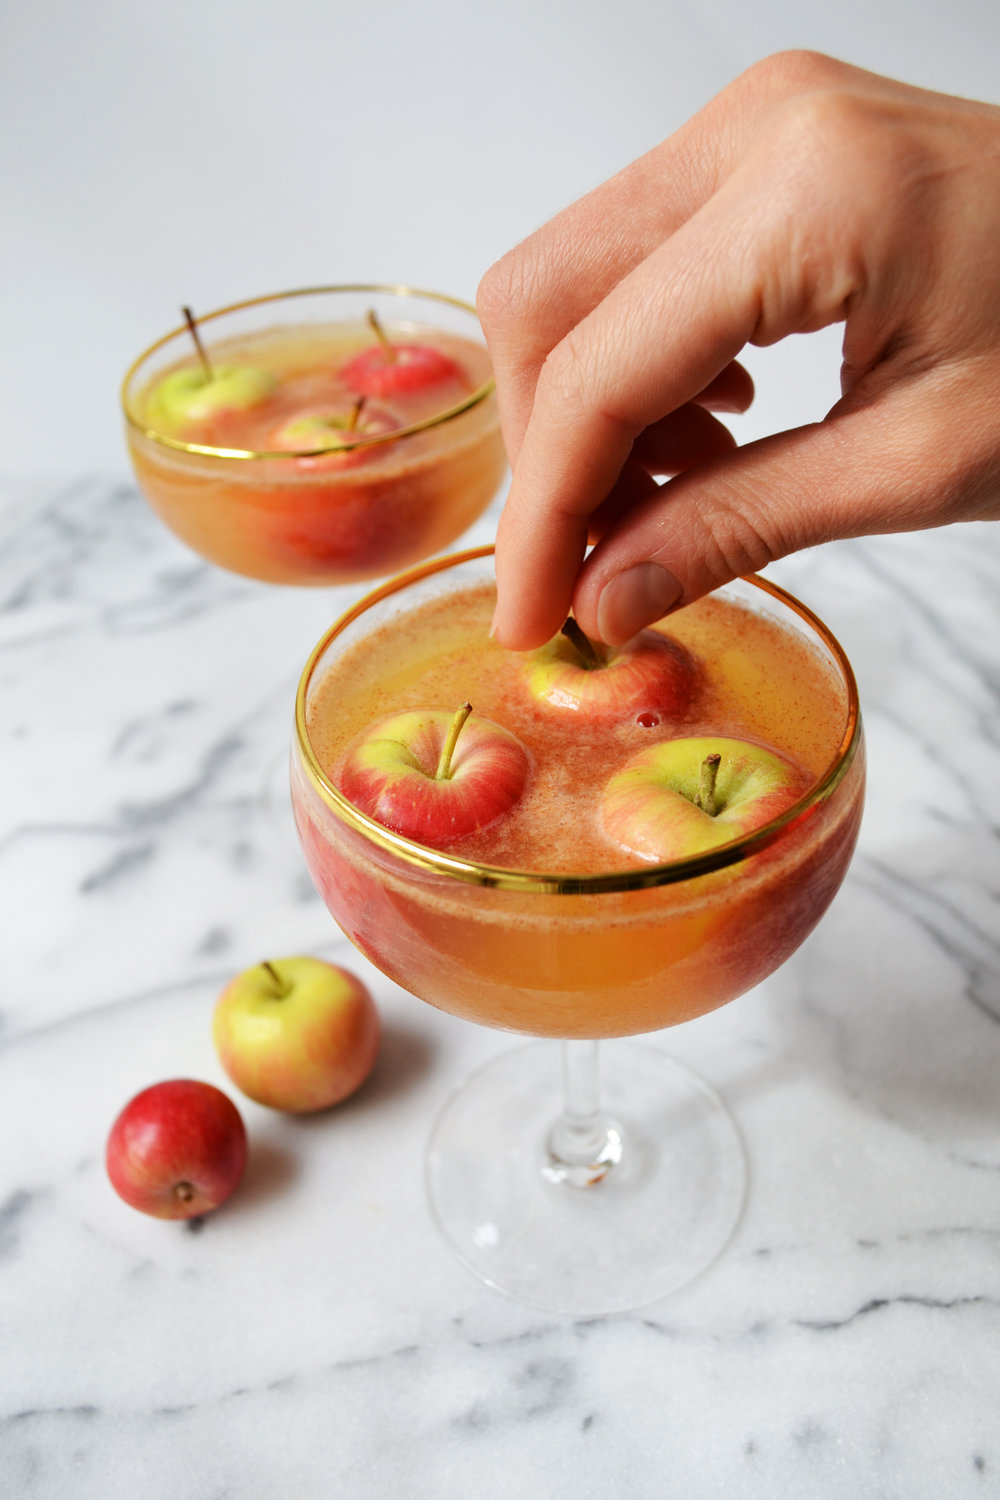 Bobbing for Apples   1.5 oz Bulleit Bourbon 1.5 oz apple juice ¼ oz simple syrup ¼ oz fresh lemon juice 1 pinch of cinnamon 3 tiny apples to garnish